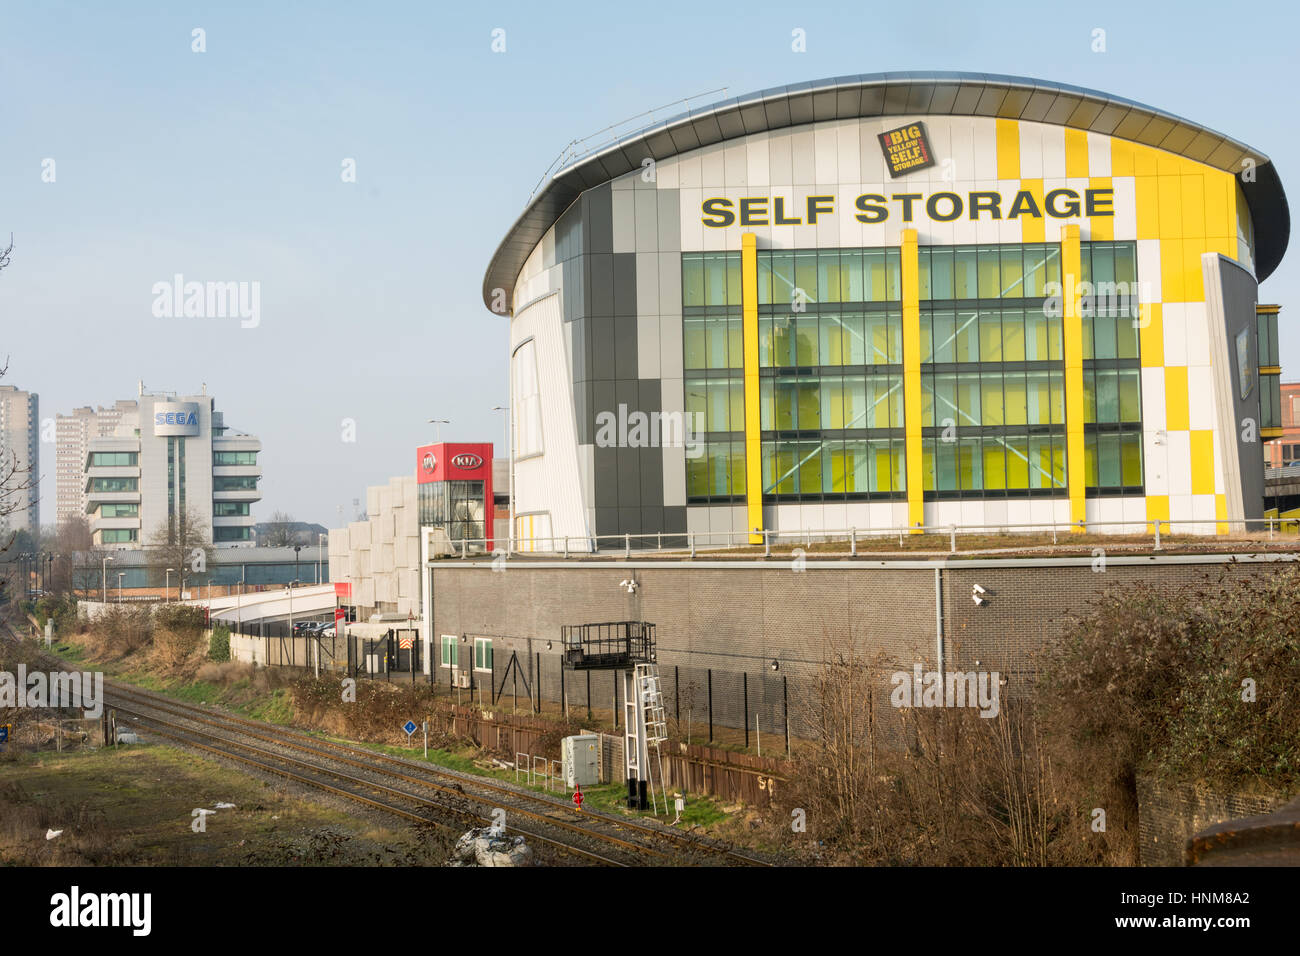 big yellow self storage brentford london uk stock photo royalty free image 133825946 alamy. Black Bedroom Furniture Sets. Home Design Ideas